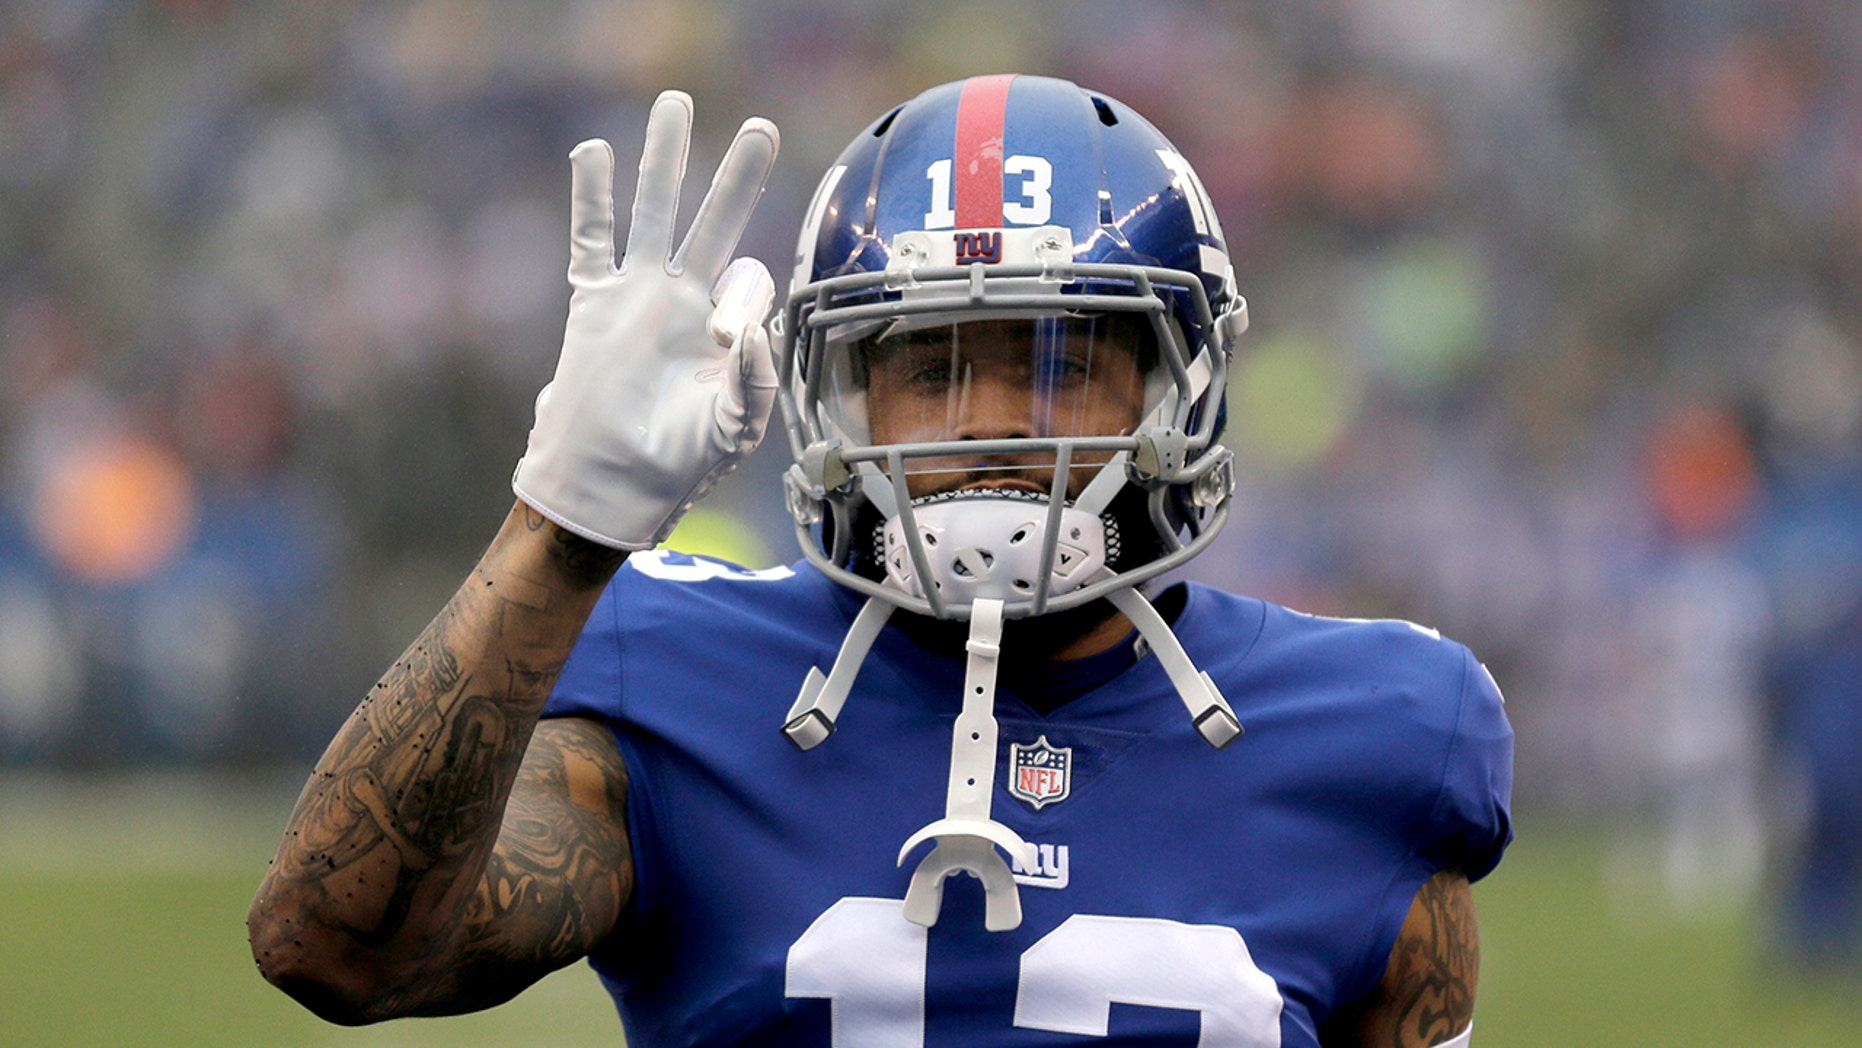 FILE - In this Dec. 2, 2018, file photo, New York Giants wide receiver Odell Beckham Jr. gestures prior to the team's NFL football game against the Chicago Bears in East Rutherford, N.J. (Associated Press)